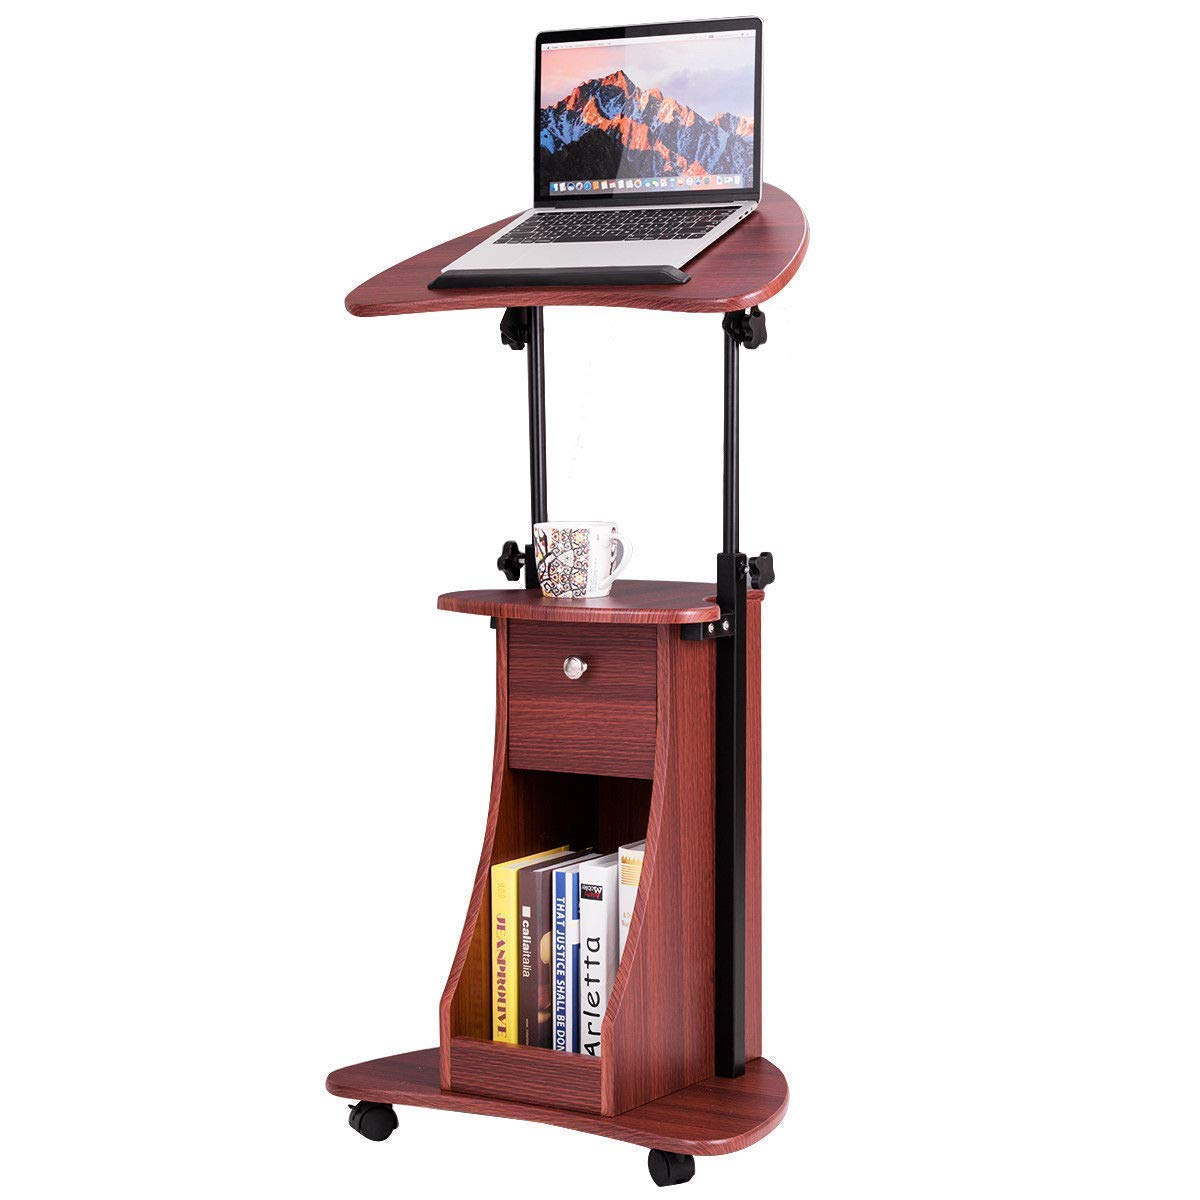 Tangkula Laptop Cart, Adjustable Height and Swivel Top Lectern Podium Desk Cart, Rolling Standing Notebook Laptop Table Cart, Portable Mobile Computer Desk with Storage Drawer (Natural)